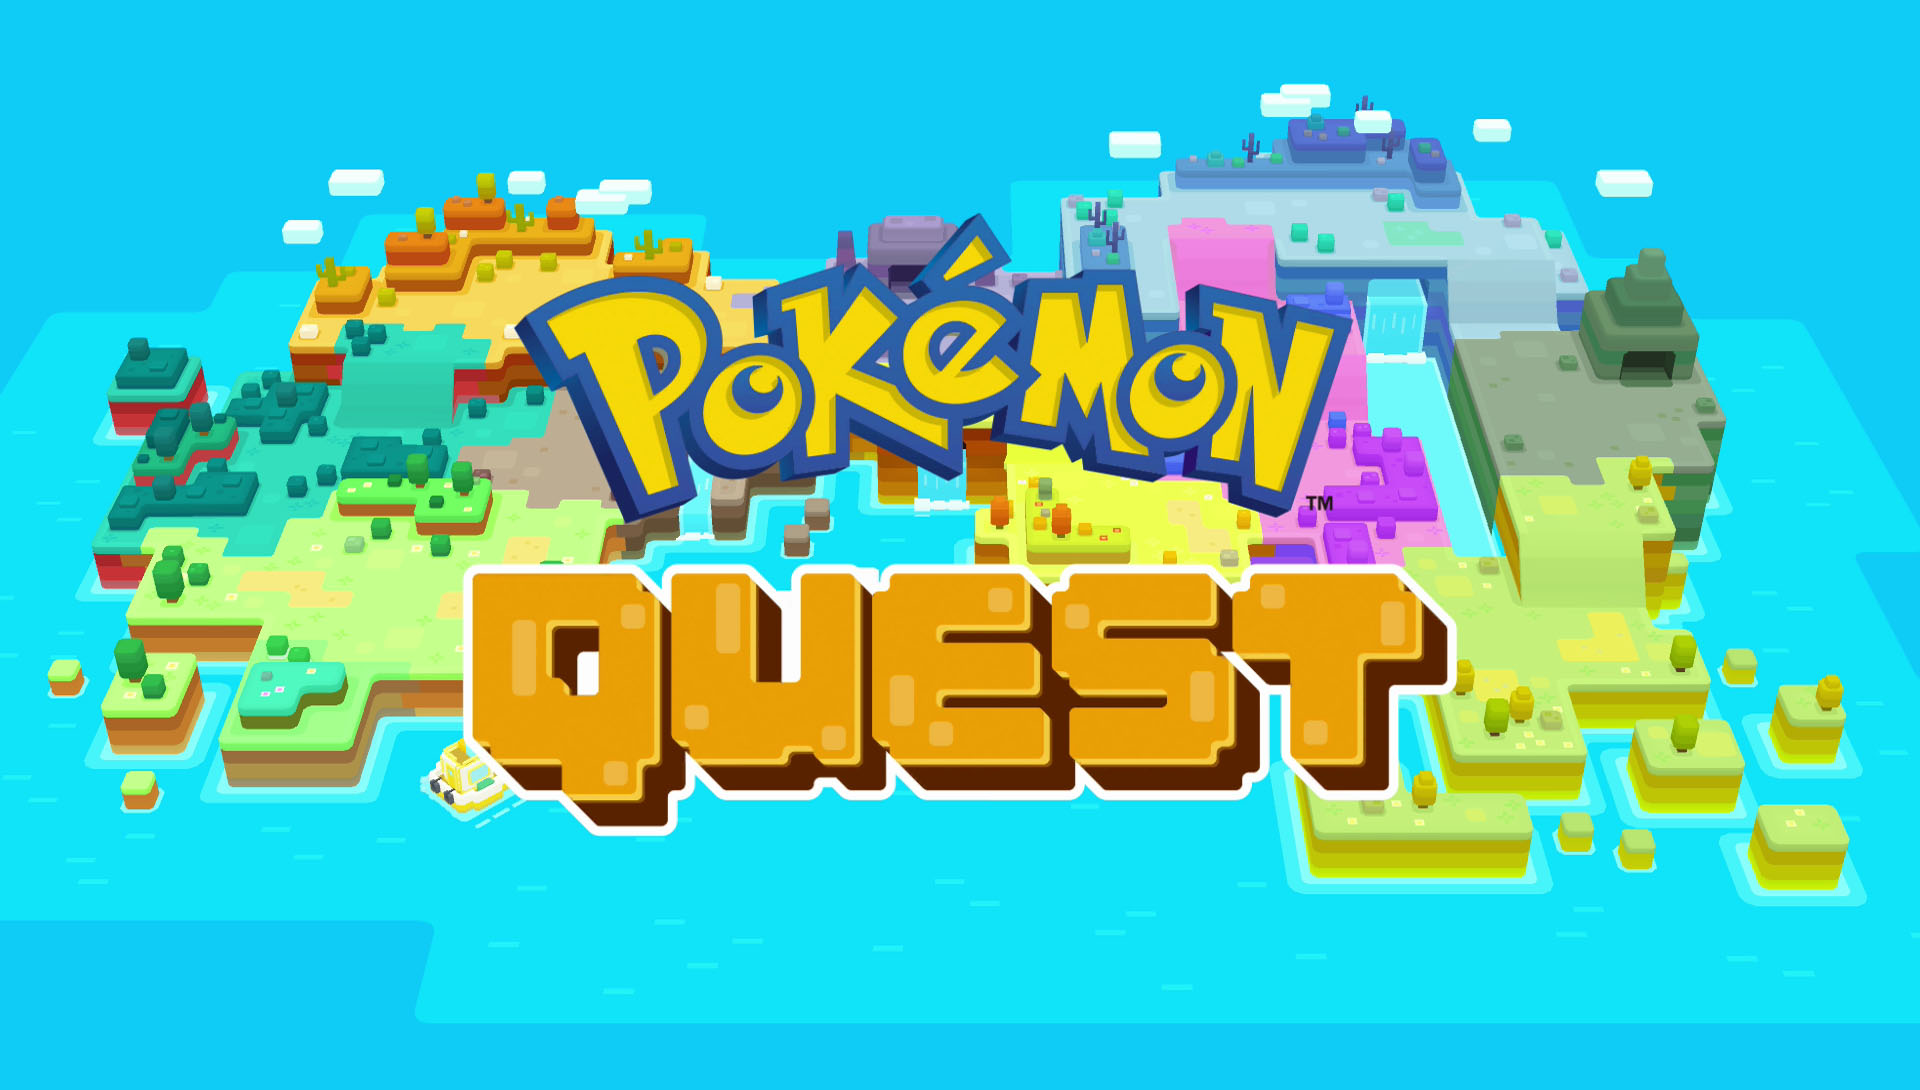 Pokemon Quest is adorable, but ultimately just another tapper screenshot